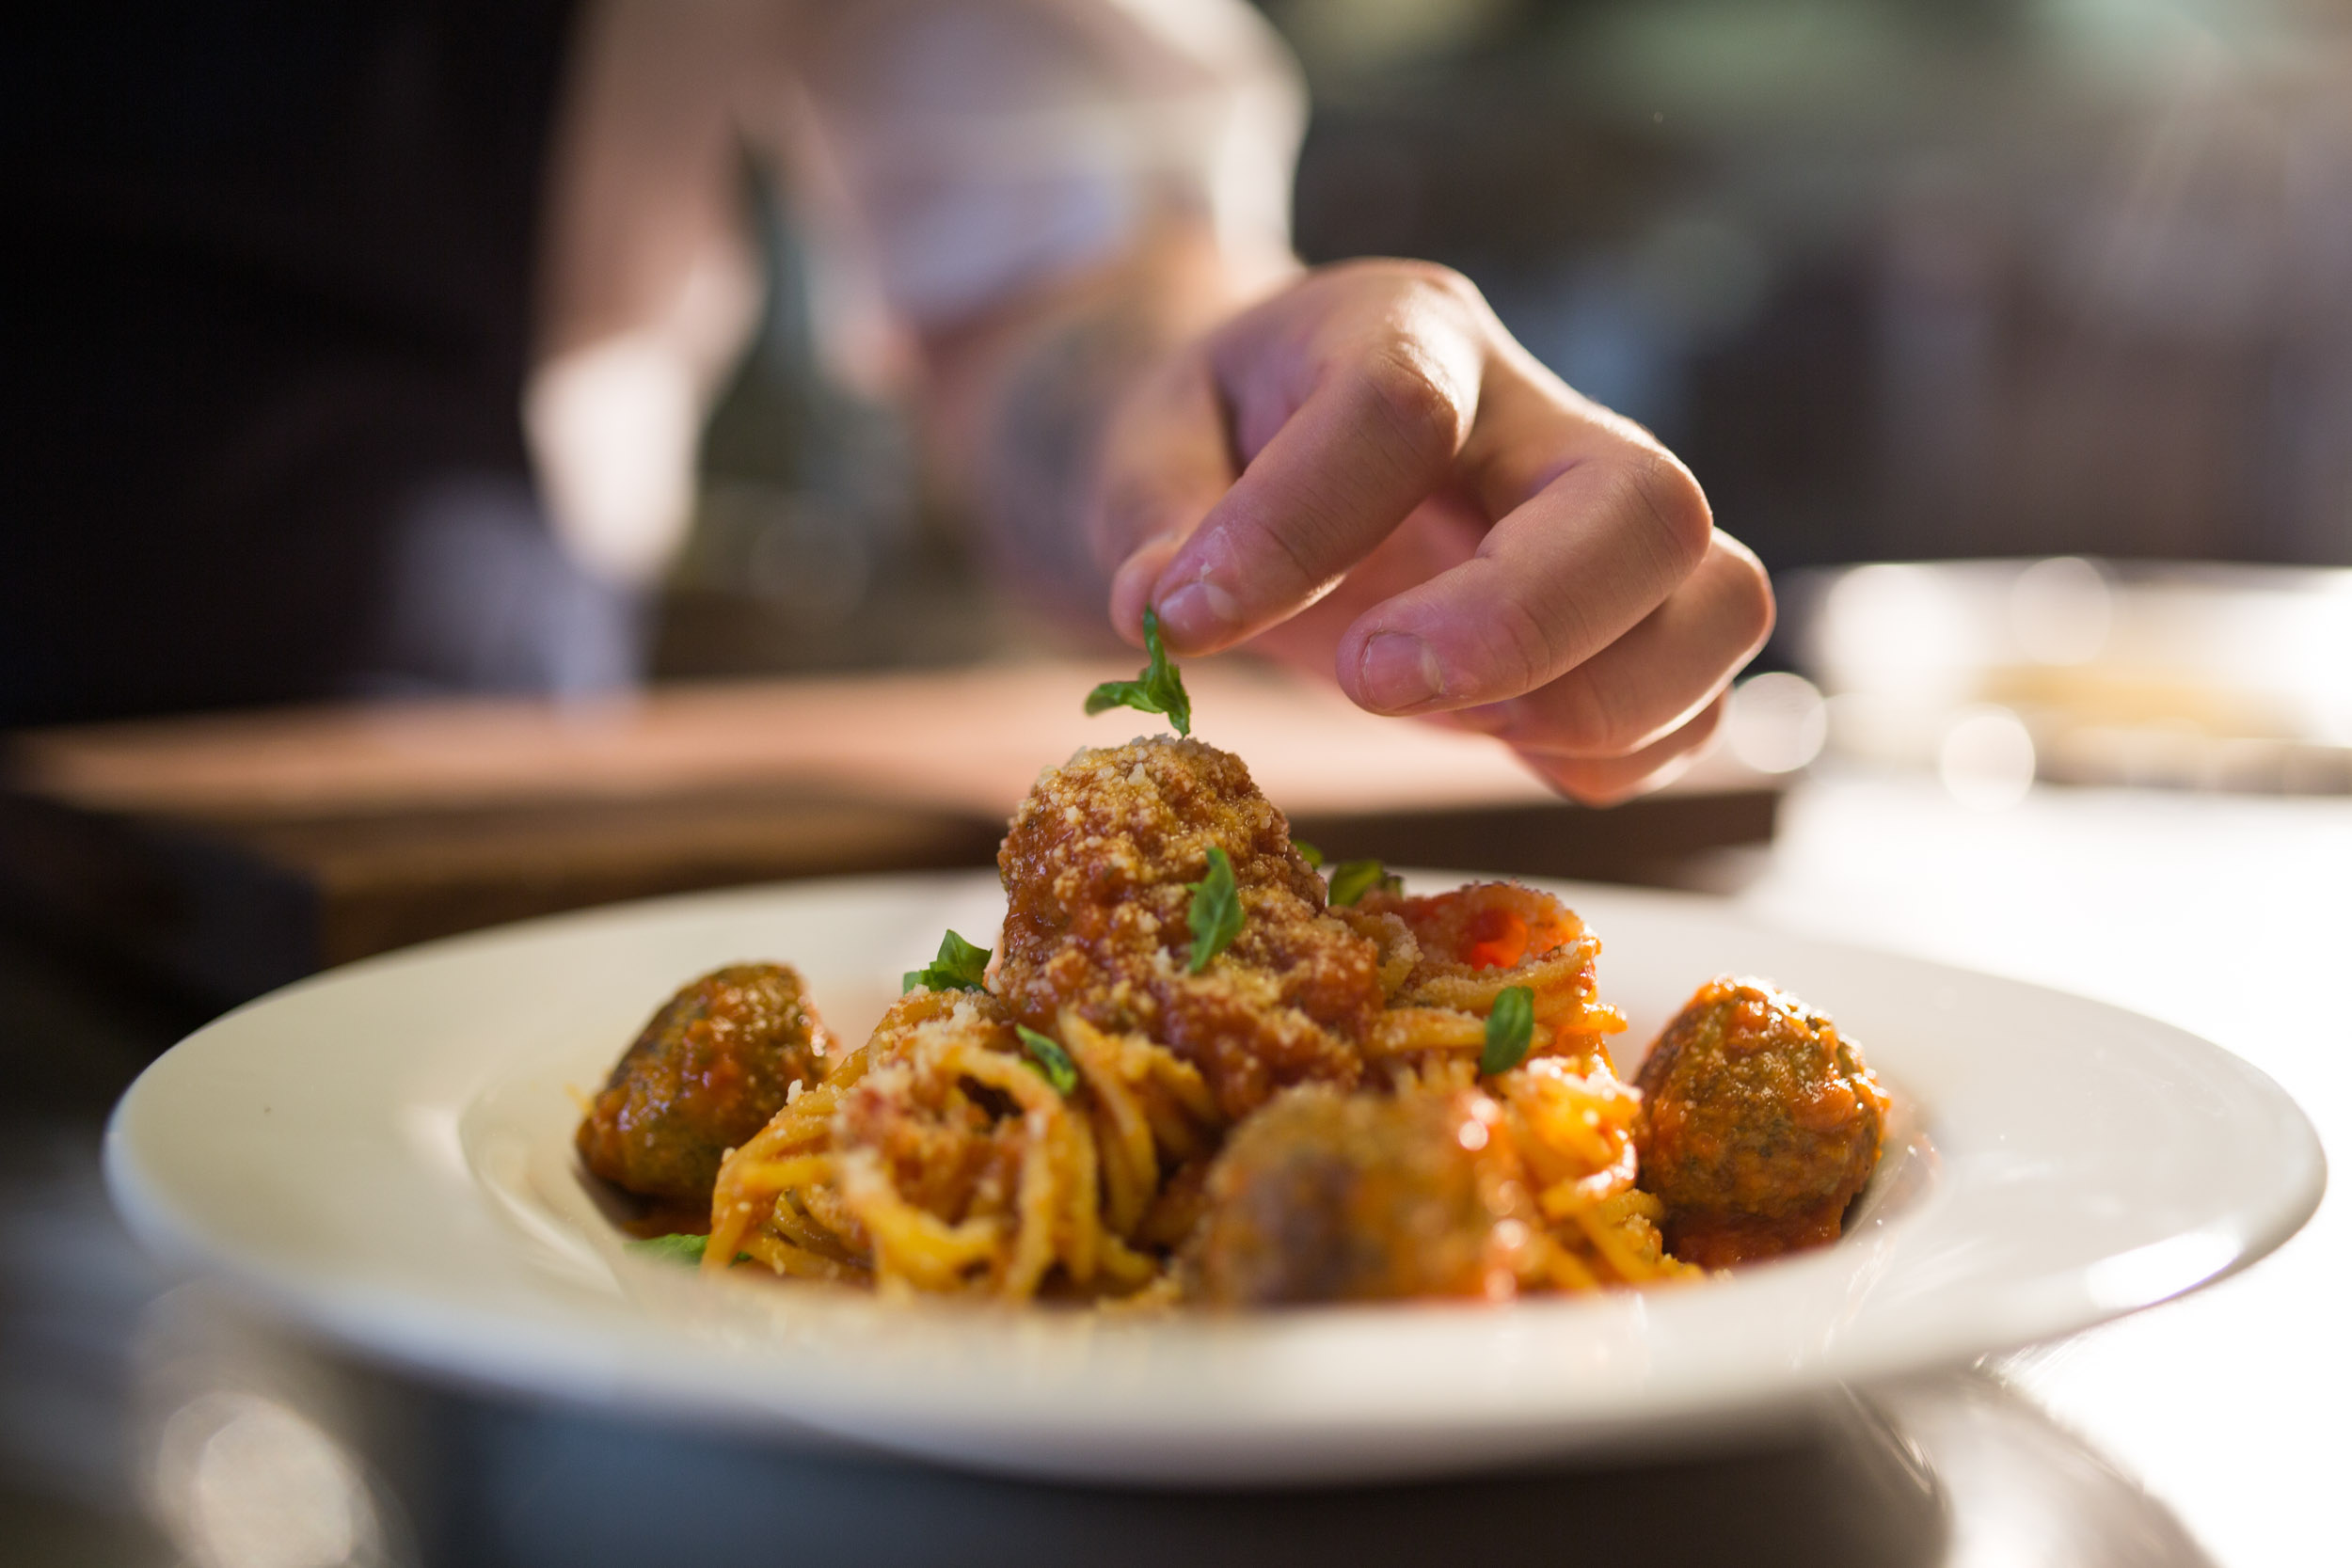 Handmade pasta with spaghetti and meatballs and microbasil